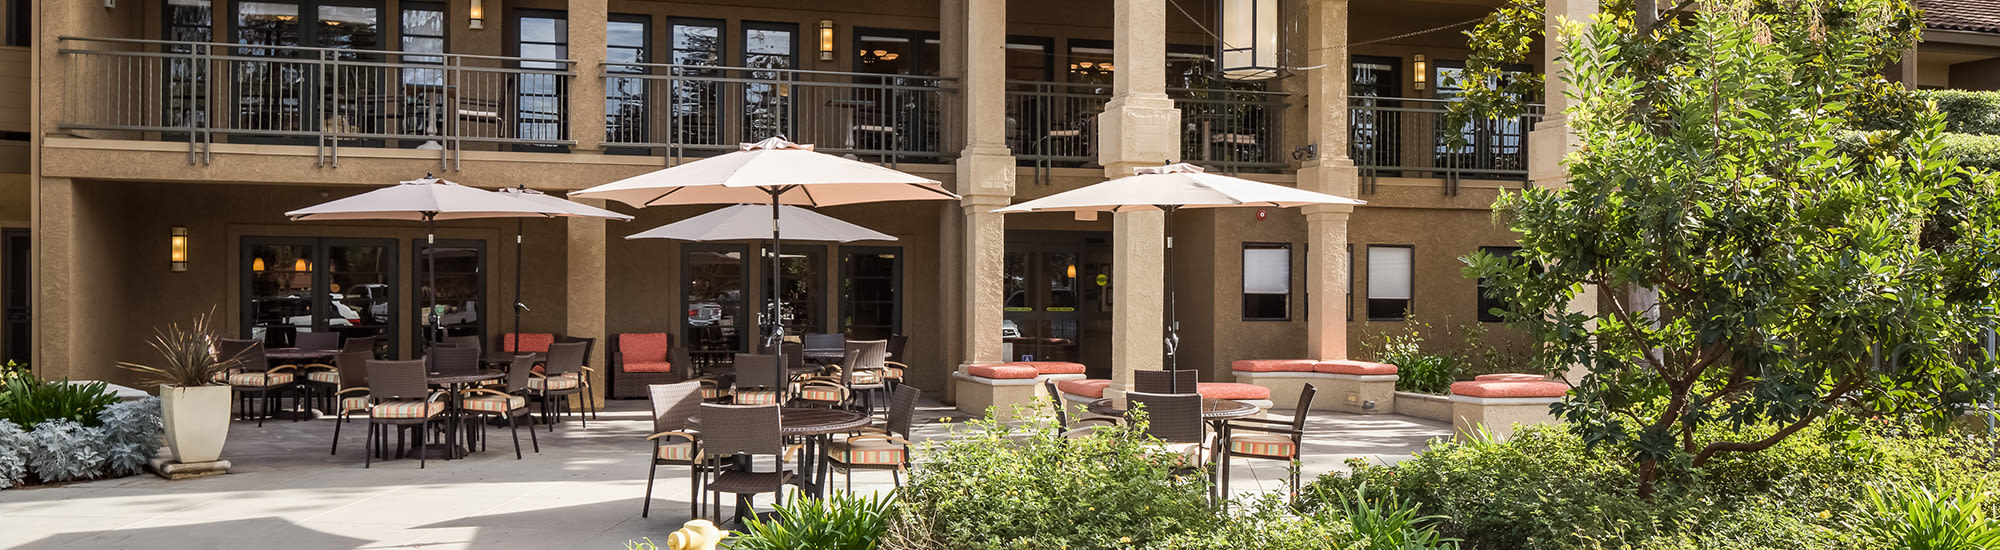 Contact at The Reserve at Thousand Oaks in Thousand Oaks, California